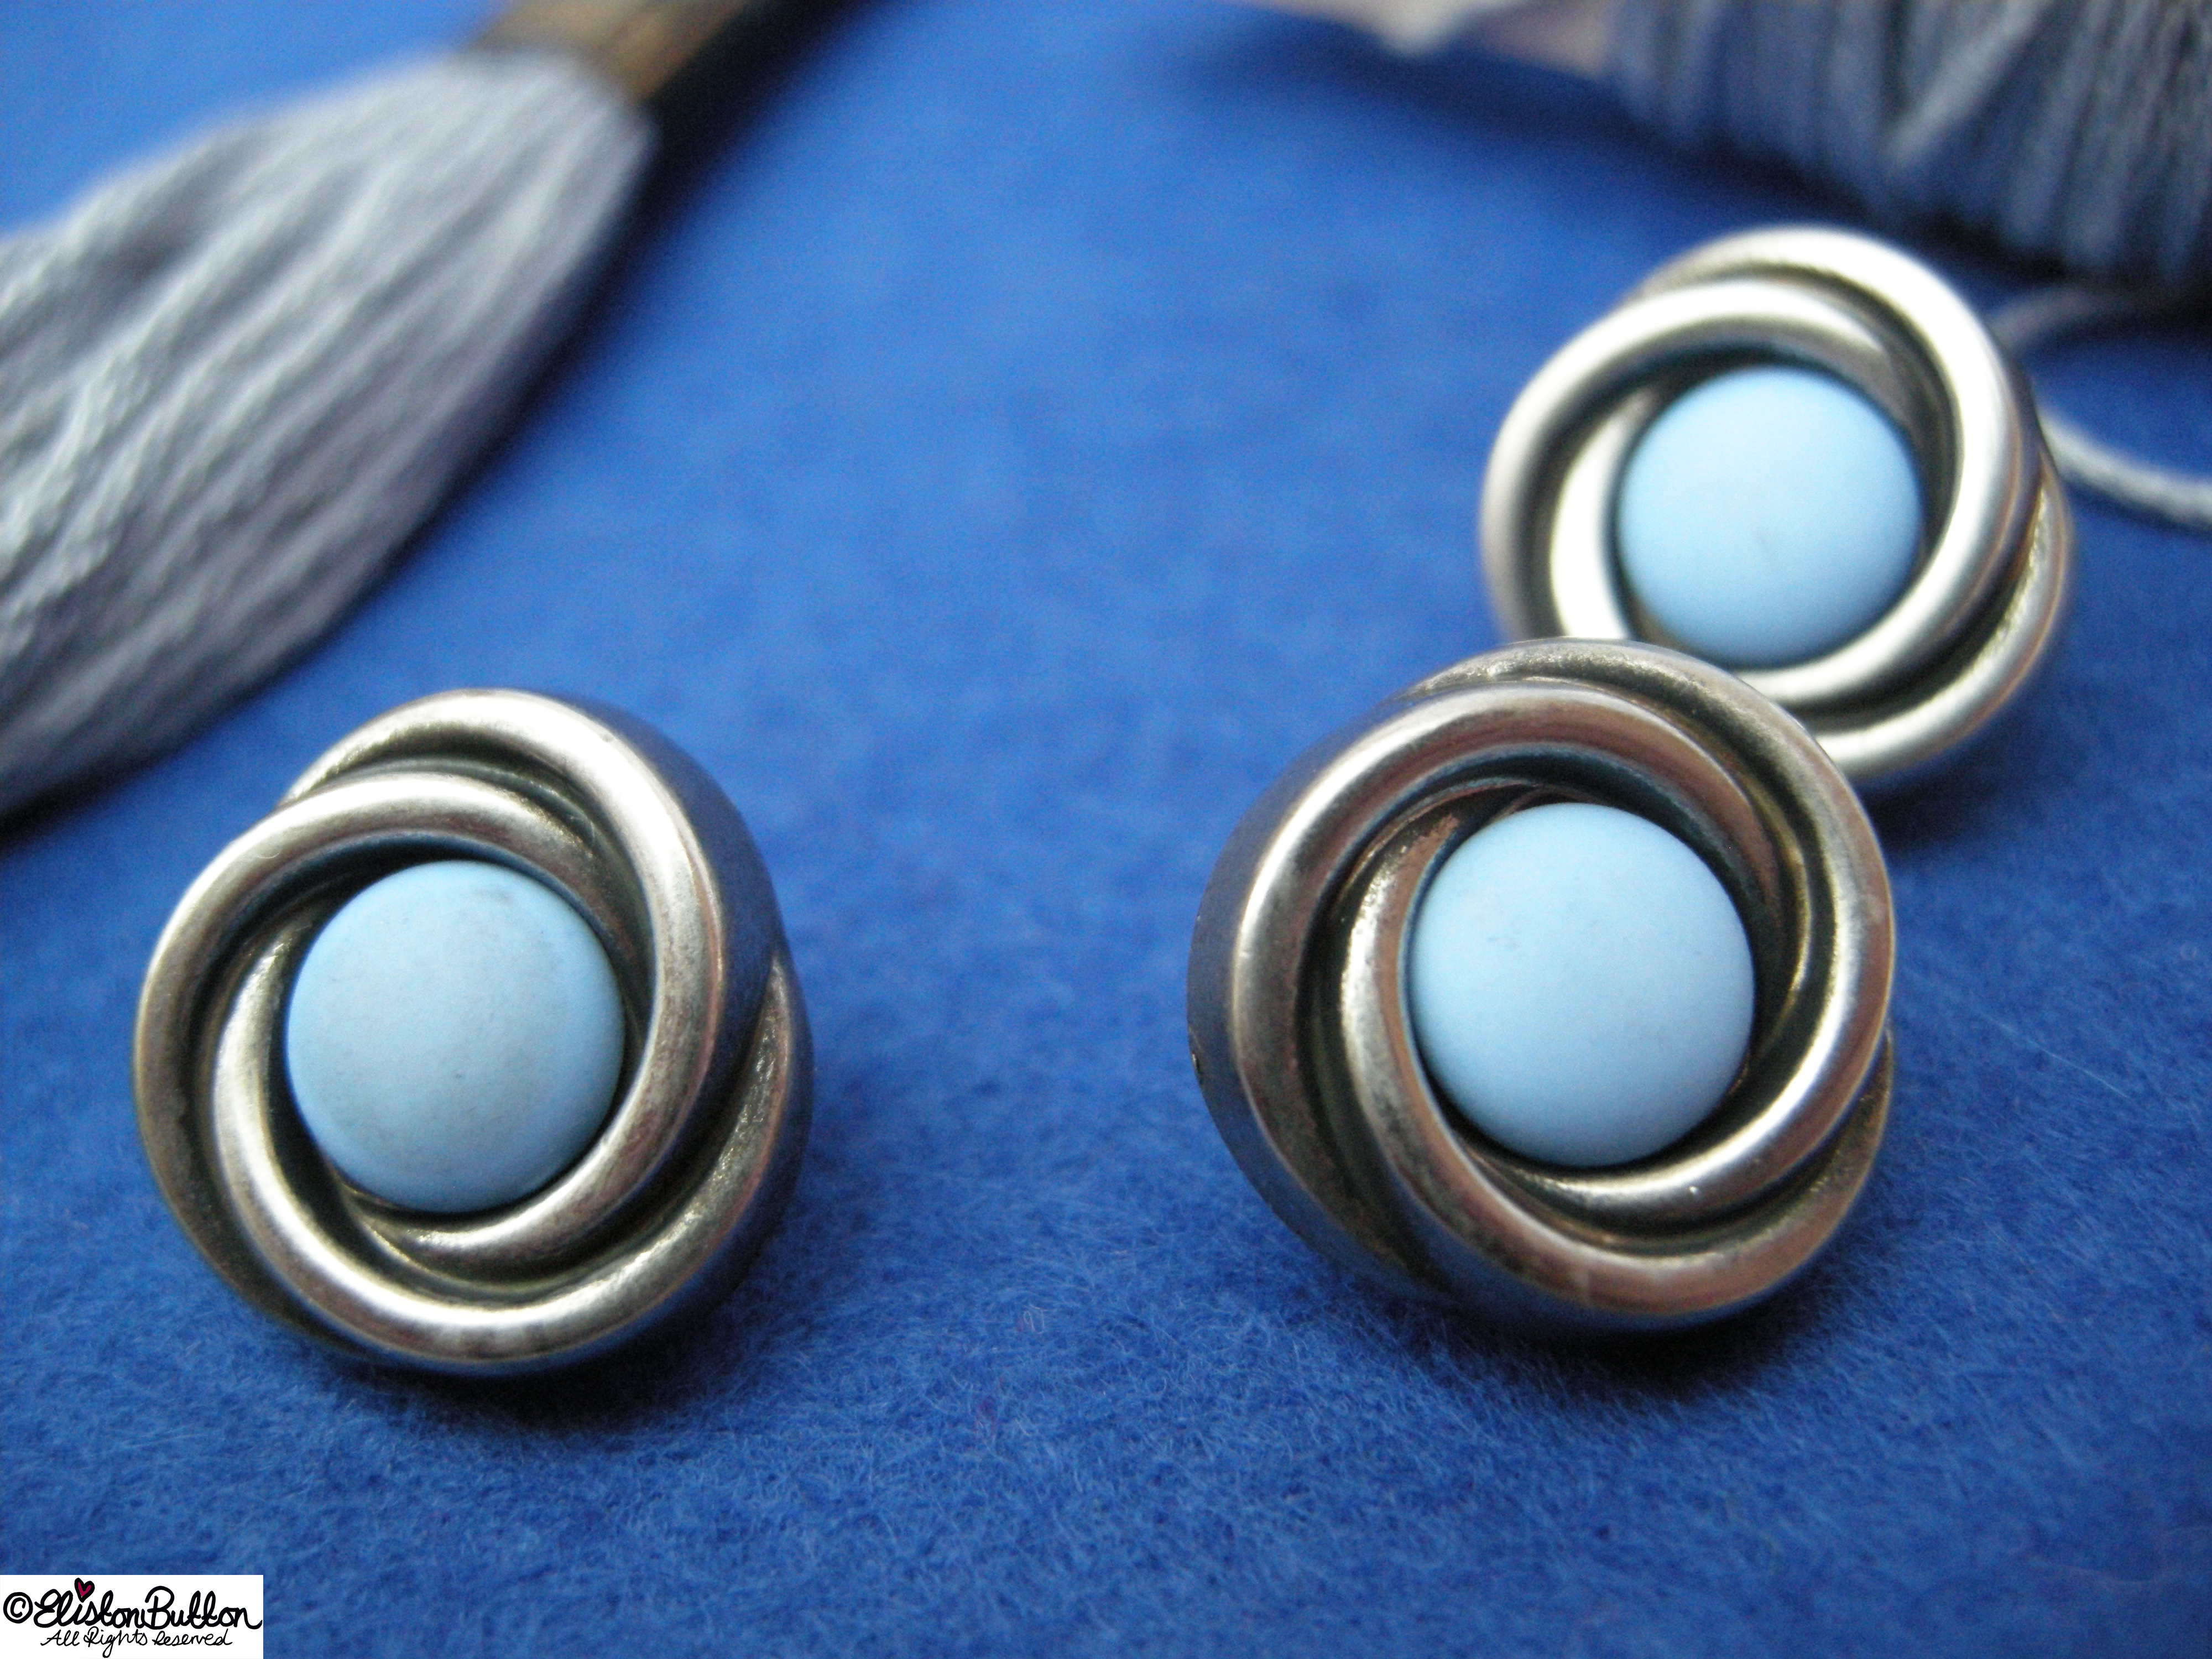 Art Deco Swirl Buttons and Blue Felt  - 27 Before 27 - Out of the Blue at www.elistonbutton.com - Eliston Button - That Crafty Kid – Art, Design, Craft & Adventure.